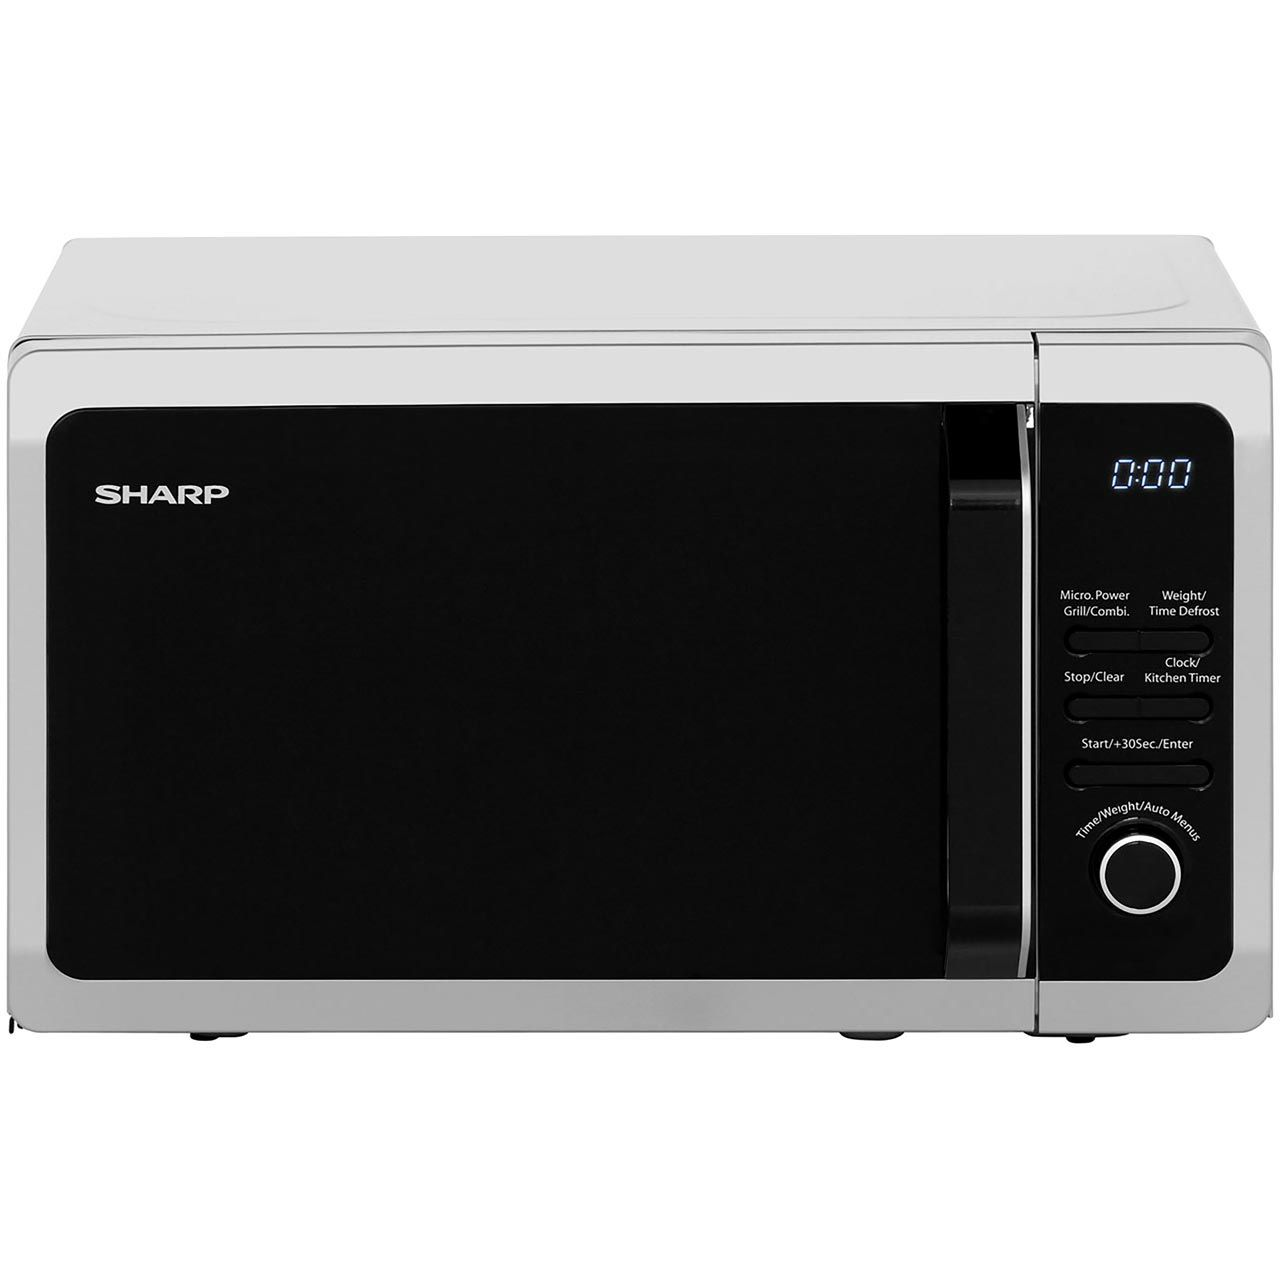 Grill Combination Microwave